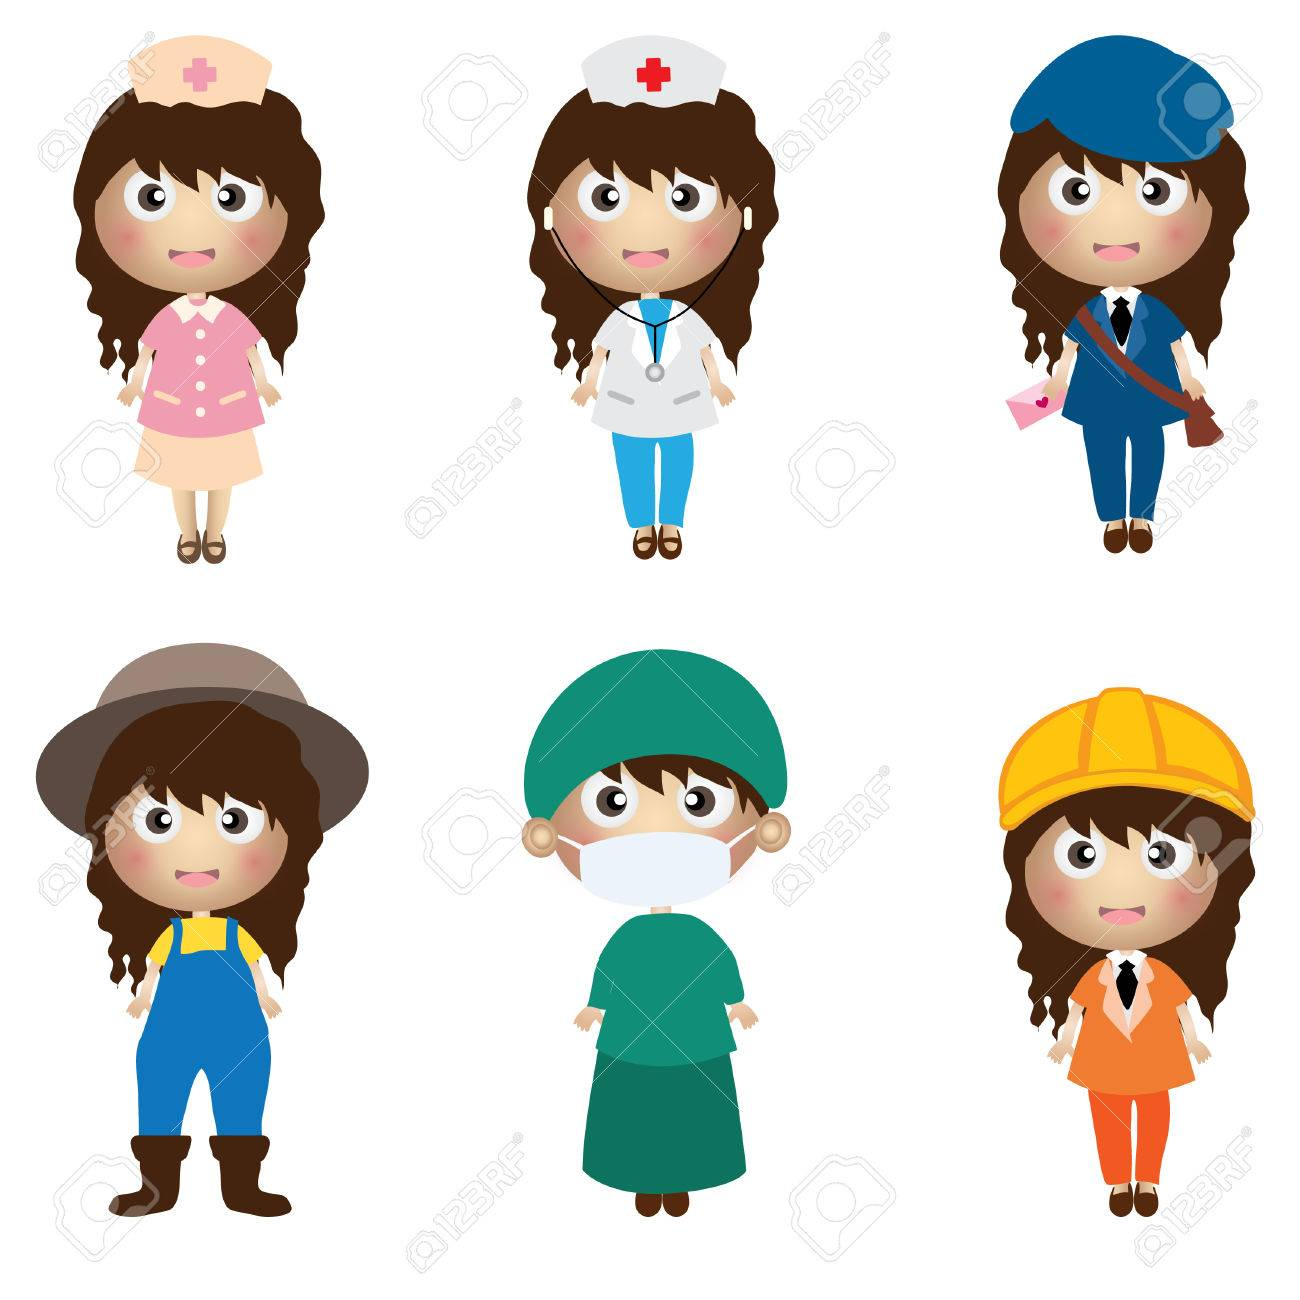 Career Kids Character Royalty Free Cliparts Vectors And Stock Illustration Image 34090617